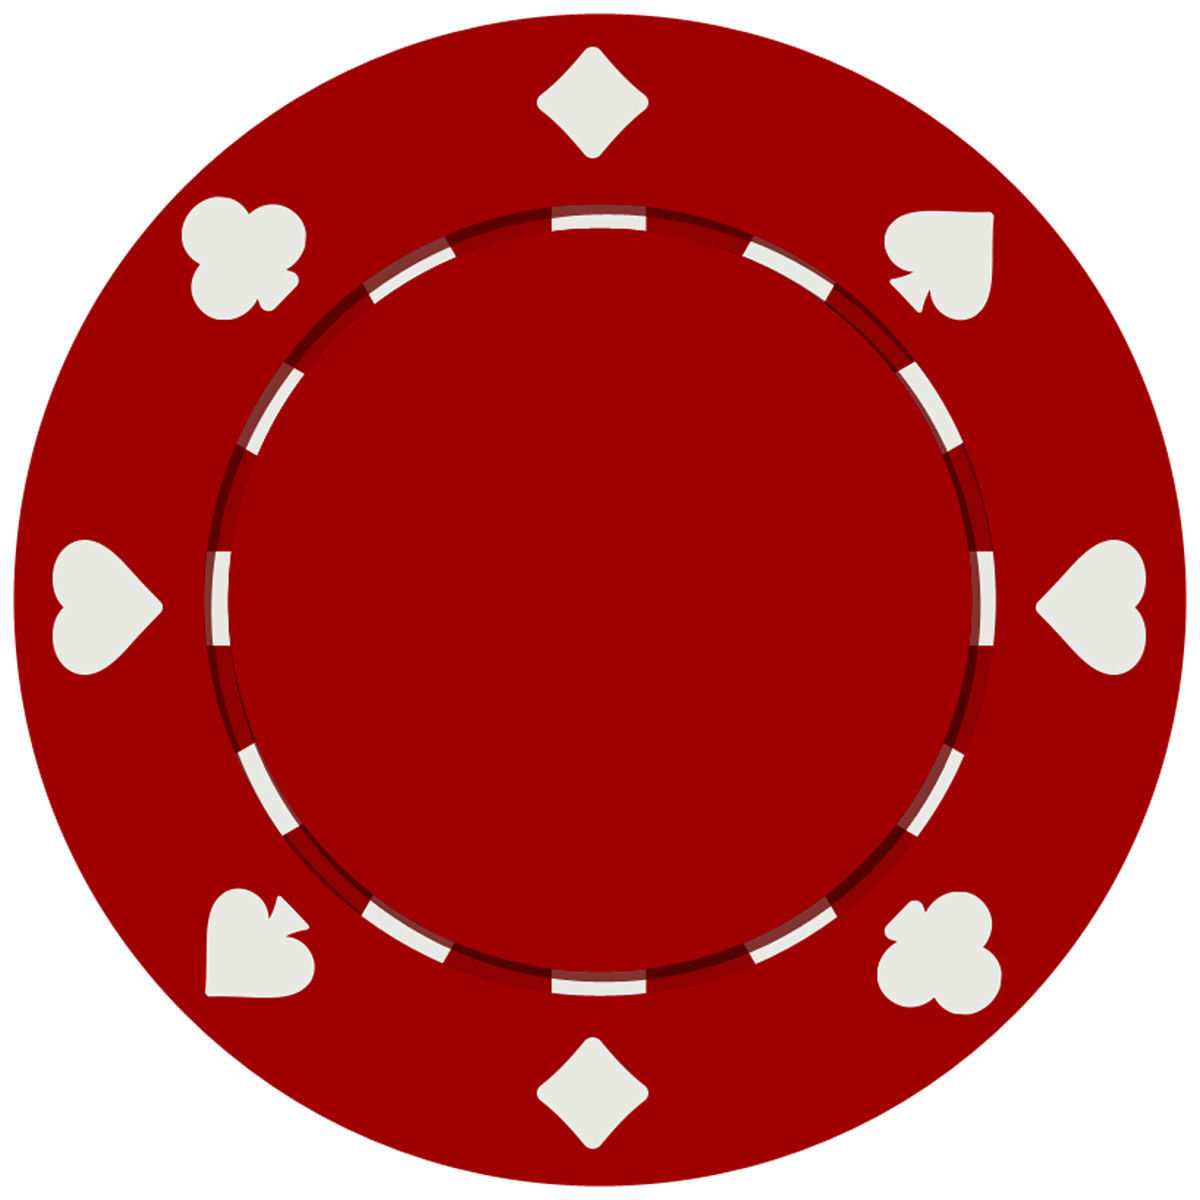 Pcs suited style poker. Chips clipart template